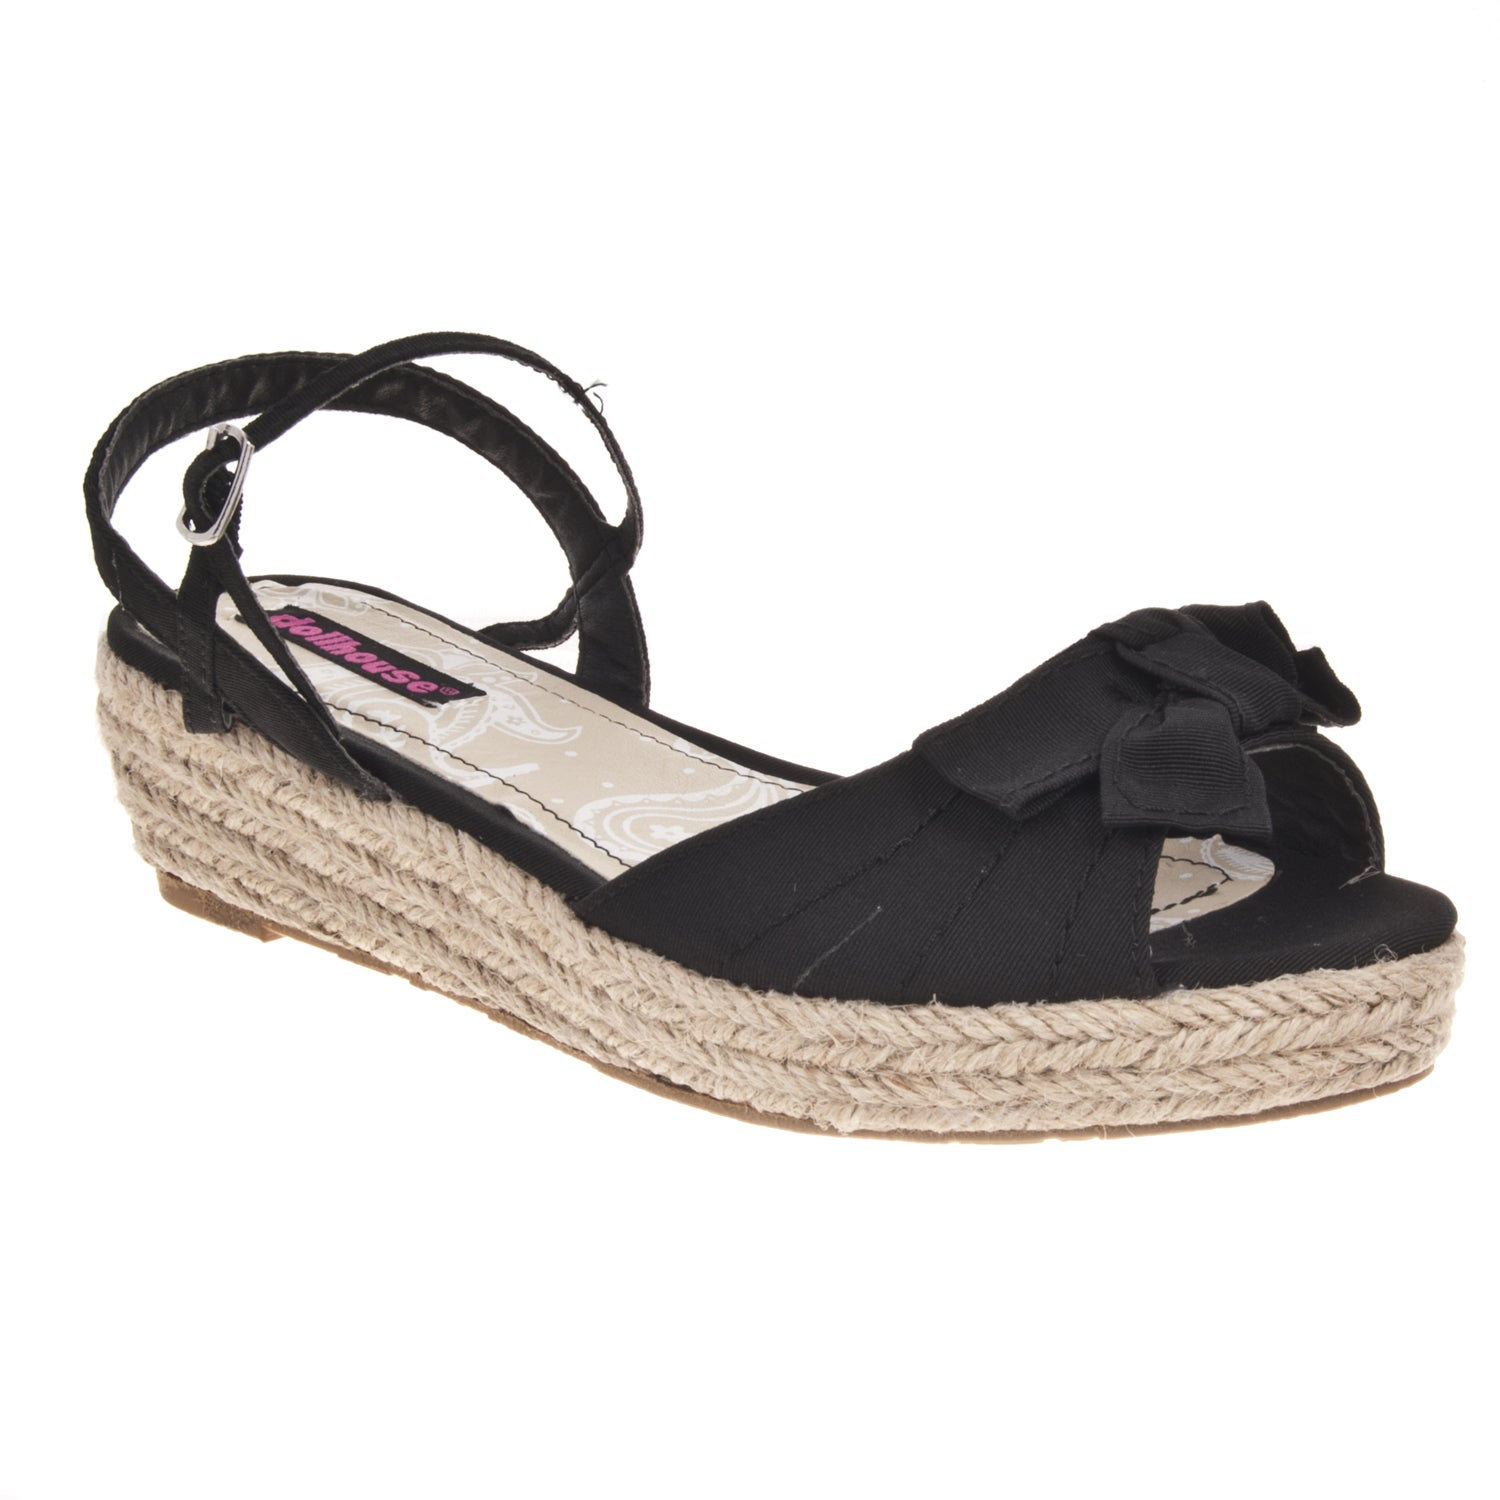 Riverberry Women's 'Quiche' Bow-detail Wedge Sandals